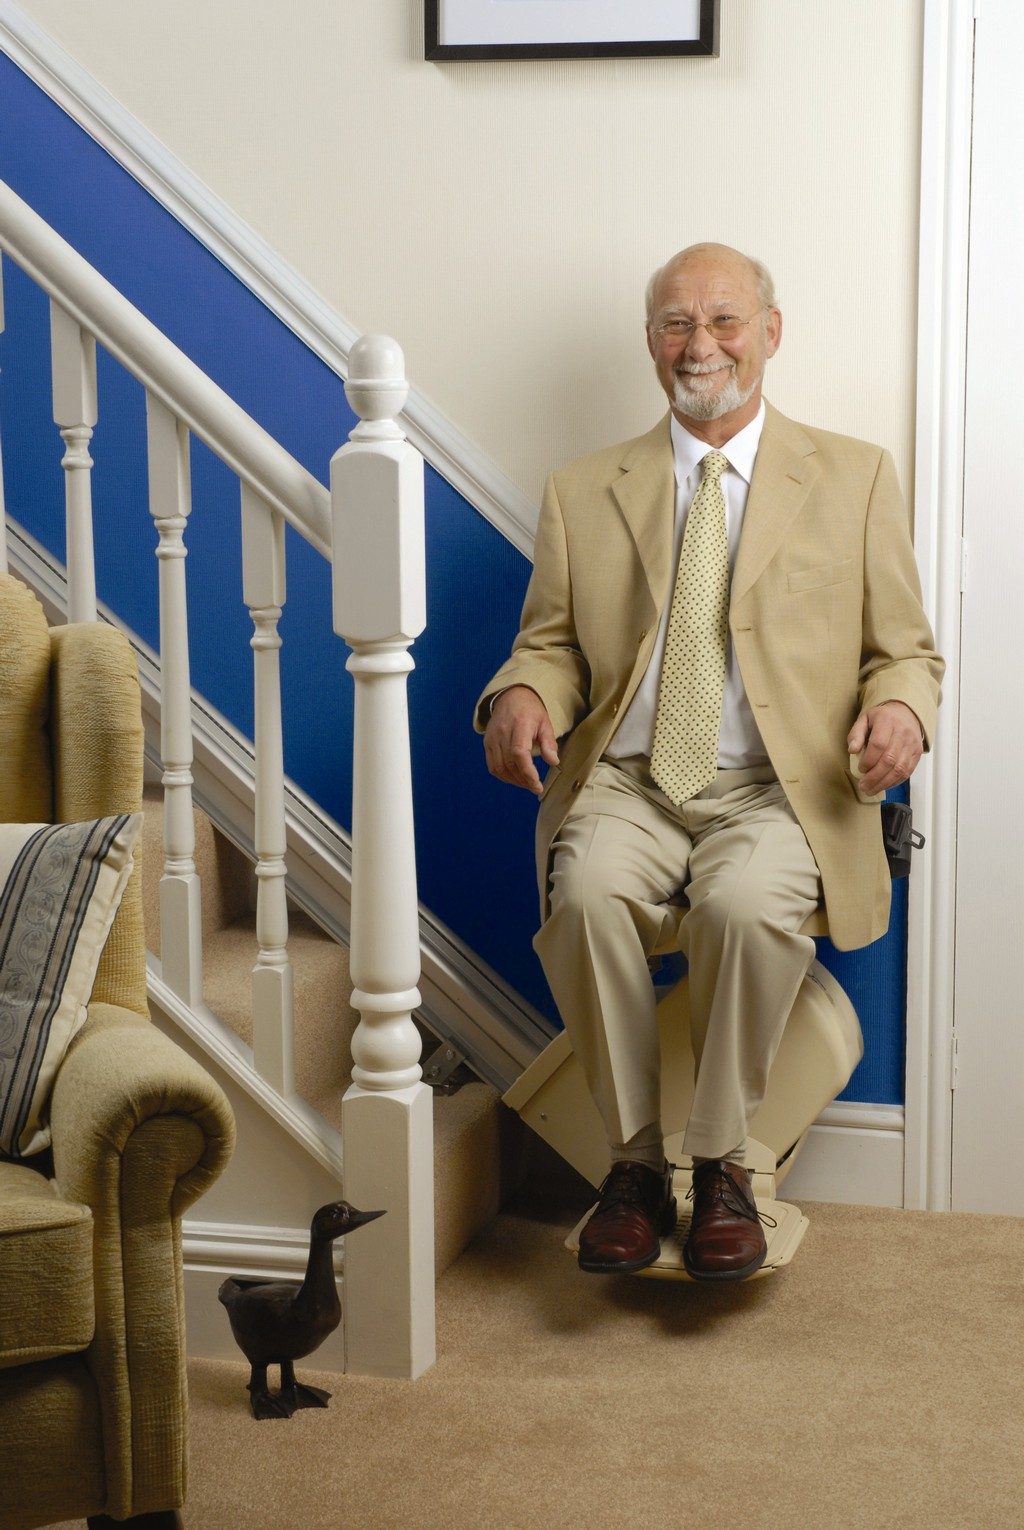 home stairlift michigan dealers, handicaper stair lifts, disabled stair lift, stair lifts in arkansas